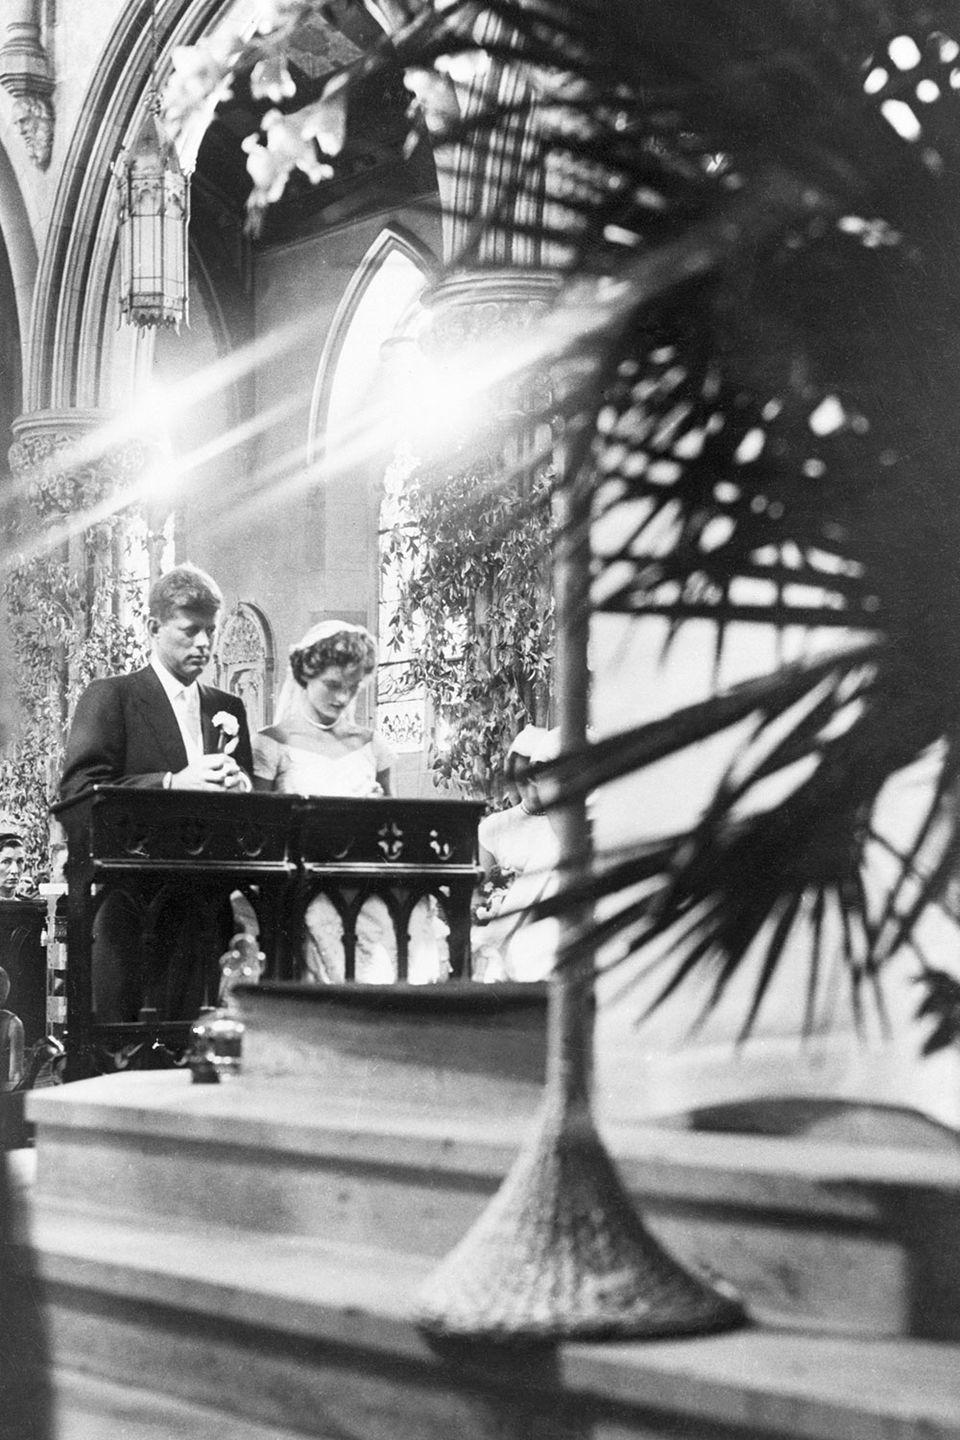 <p>The ceremony was performed by Richard Cushing, the Archbishop of Boston and a friend of the Kennedy family. Before the mass, a blessing from Pope Pius XII was read. </p>